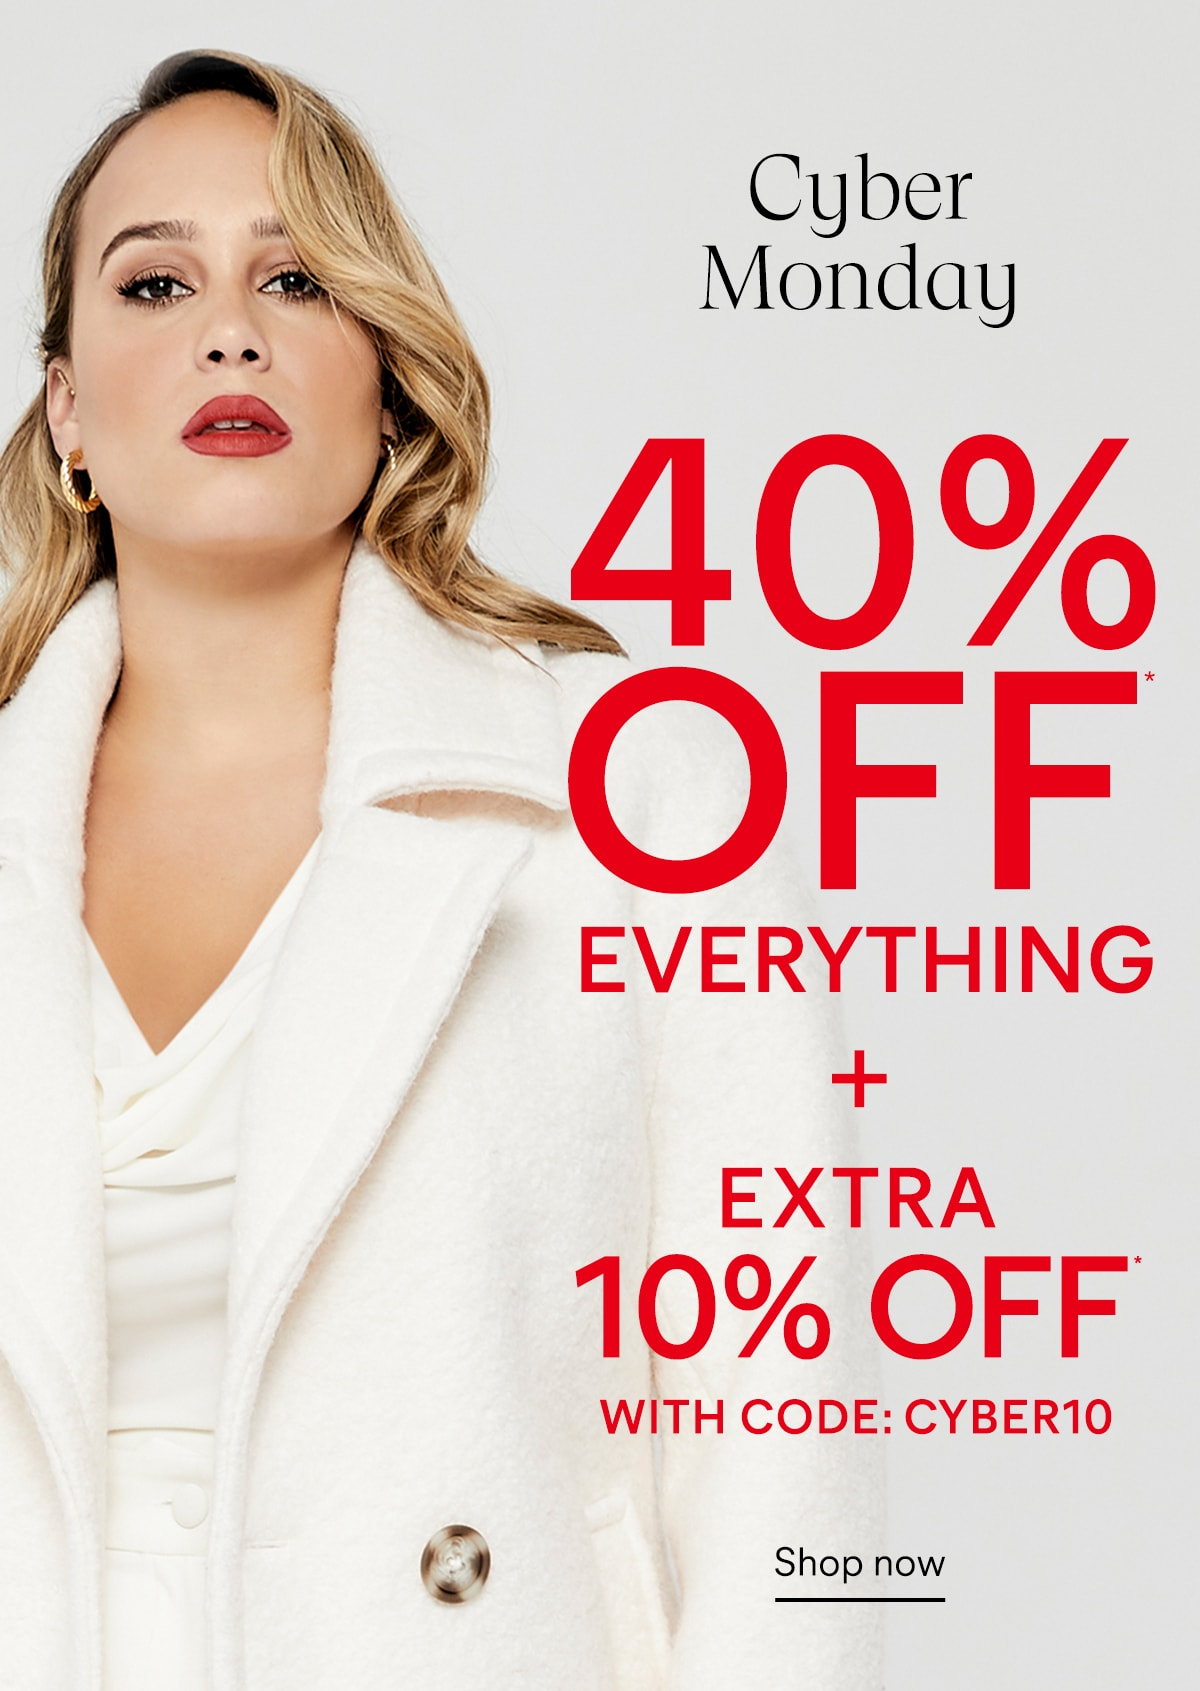 Cyber Monday 40% off everything + Extra 10% off with code: CYBER10